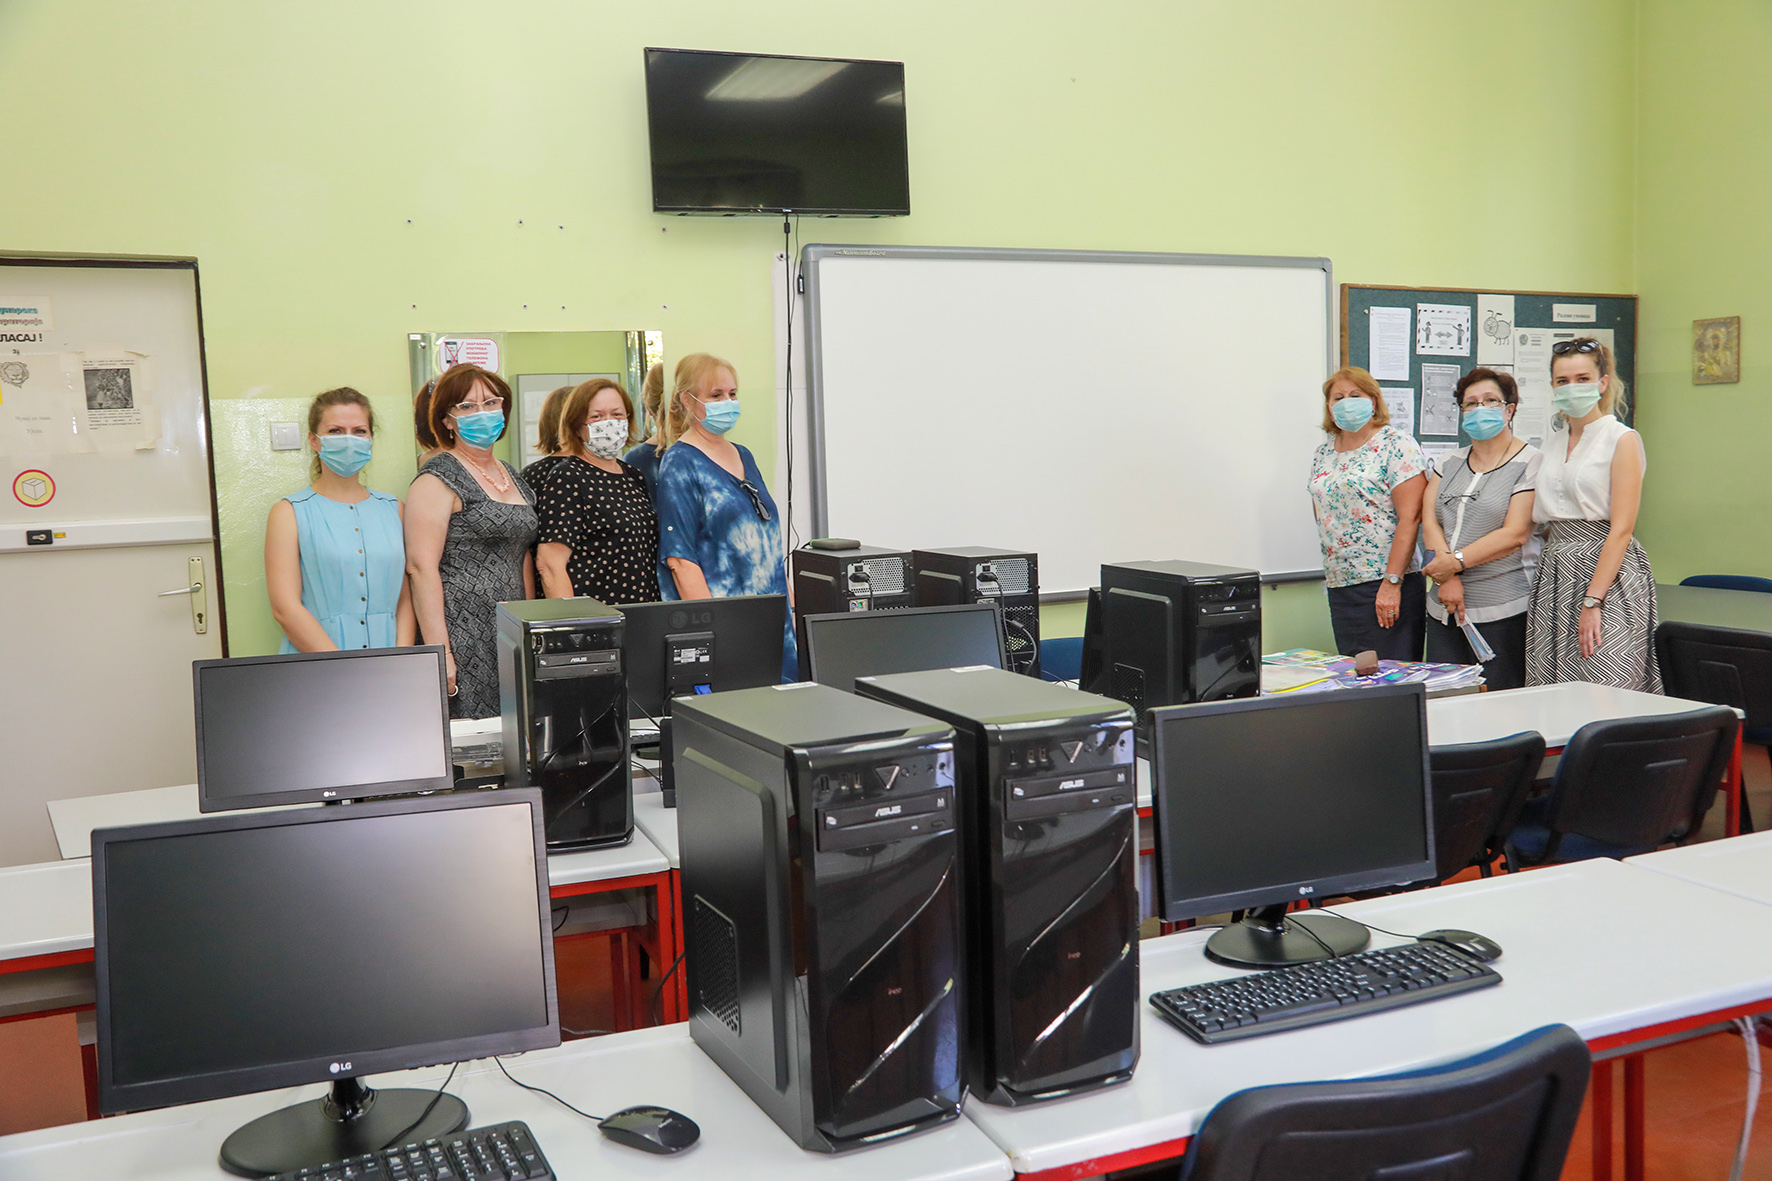 DONATION OF 7 INTERACTIVE BOARDS FOR EDUCATION OF HEARING IMPAIRED CHILDREN